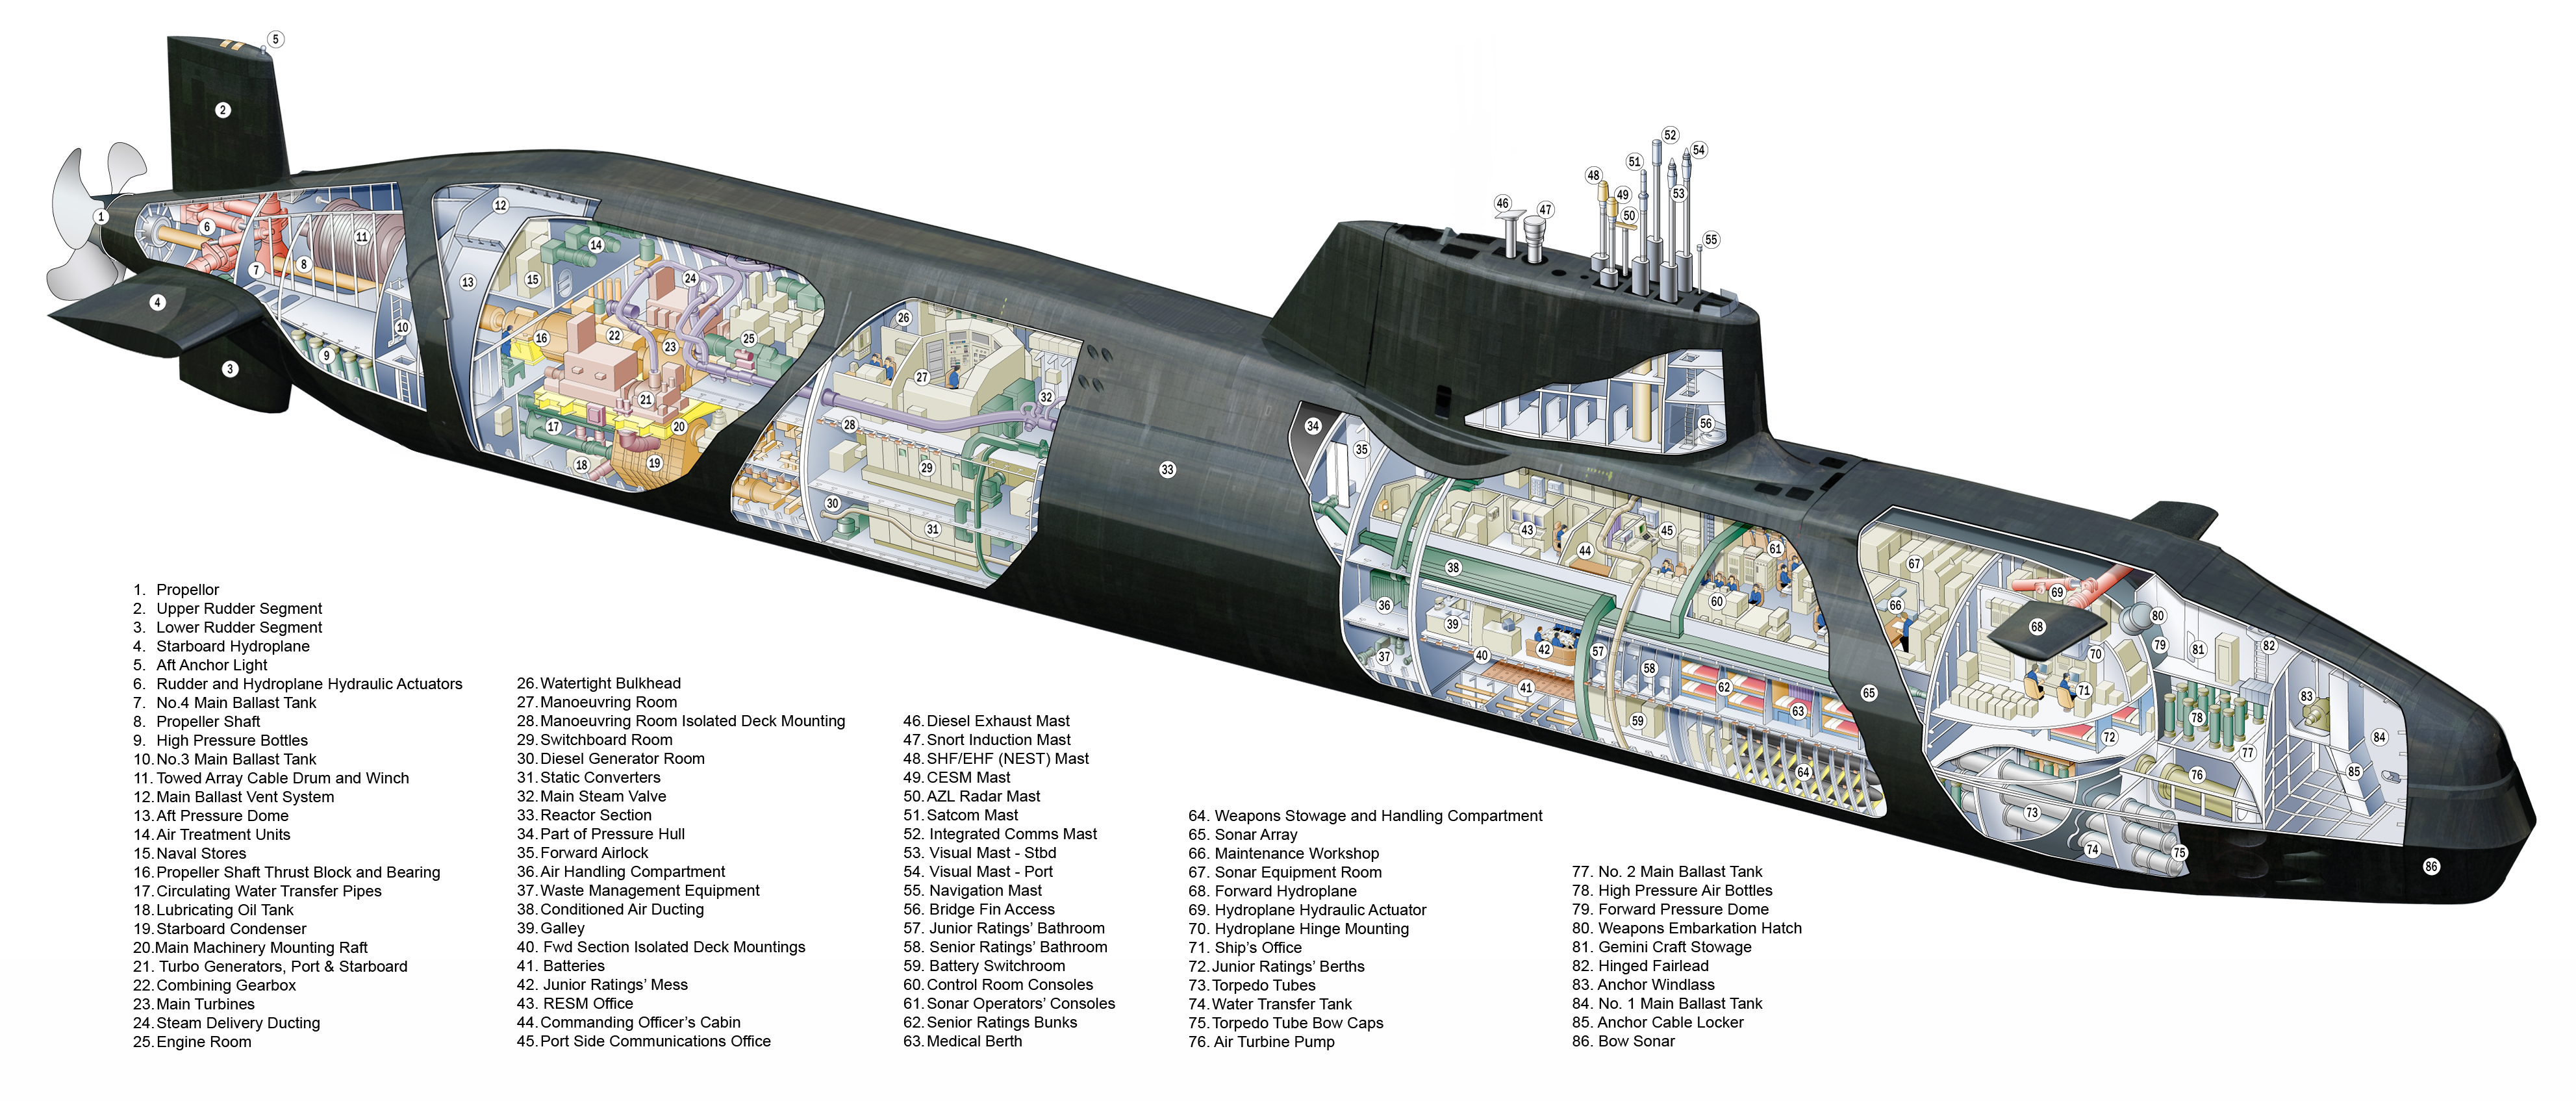 The Astute-class is the most recent class of atomic-fueled Fleet submarines in utility with the Royal Navy. The class sets another standard for the Royal Navy in terms of weapons […]